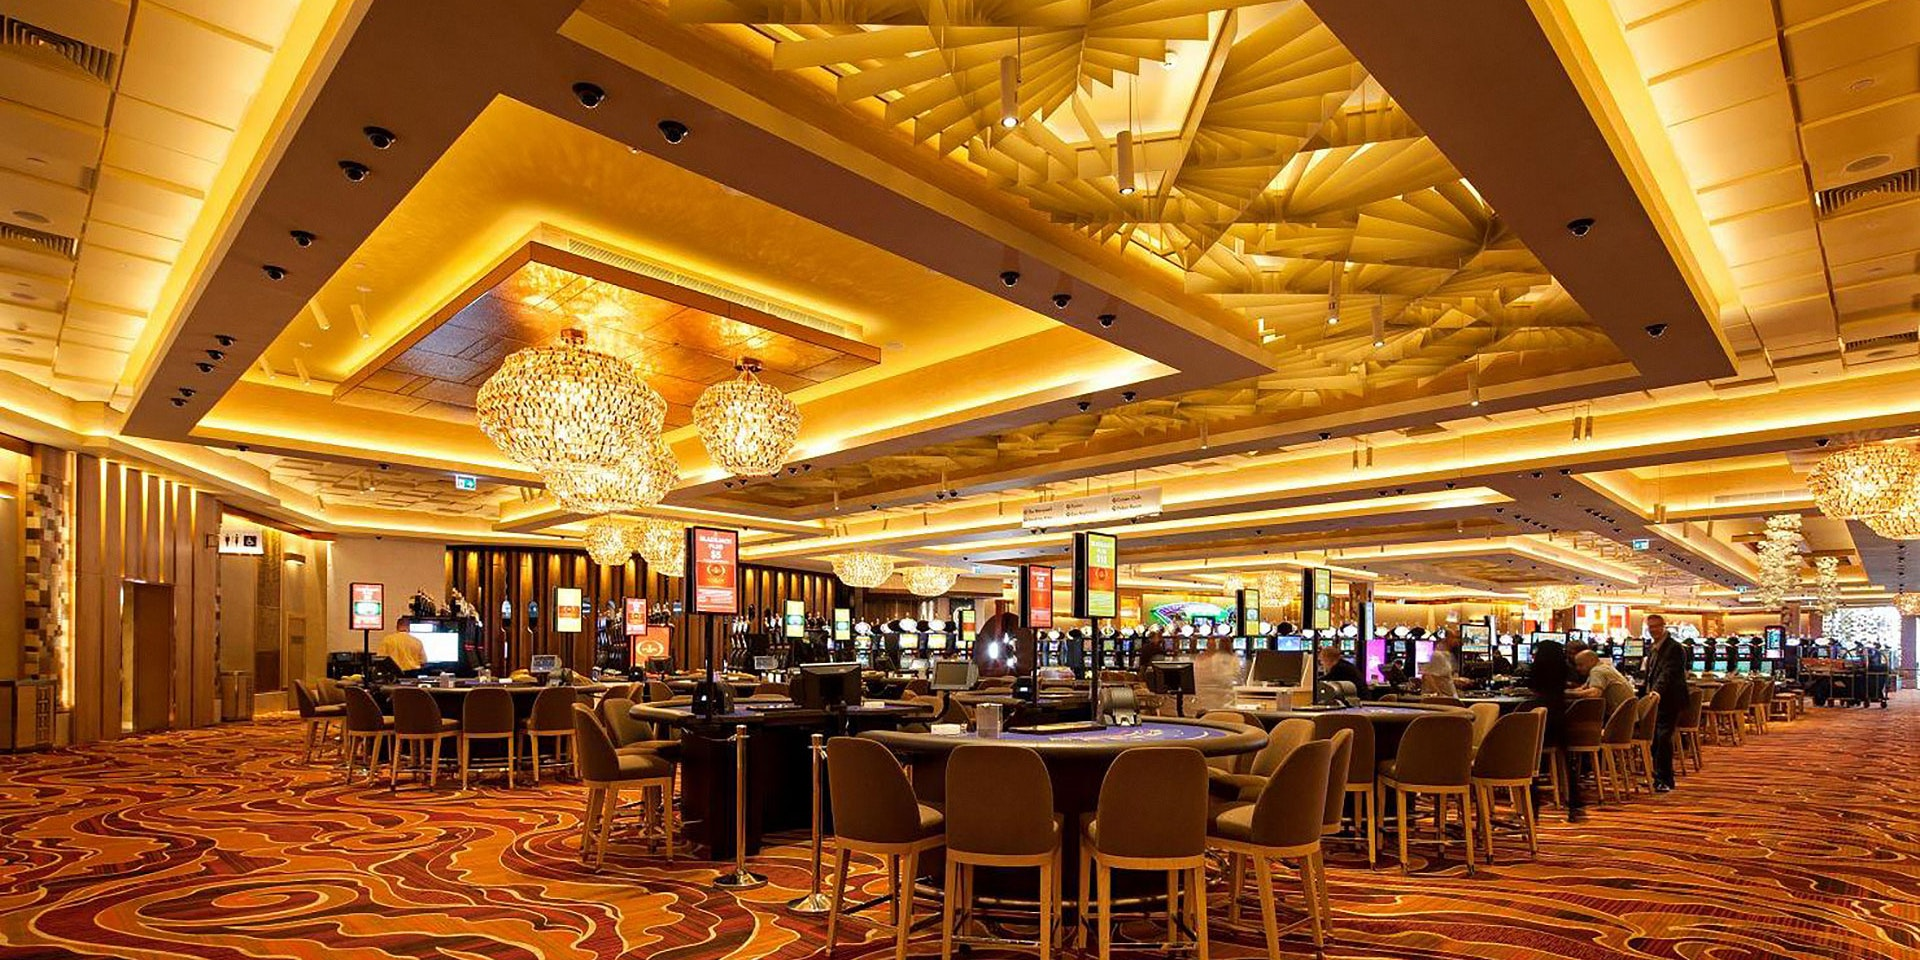 Aduro high-performance indirect LED strip in application, installed in the Crown Casino in Perth. Beautiful architectural lighting with a high CRI.